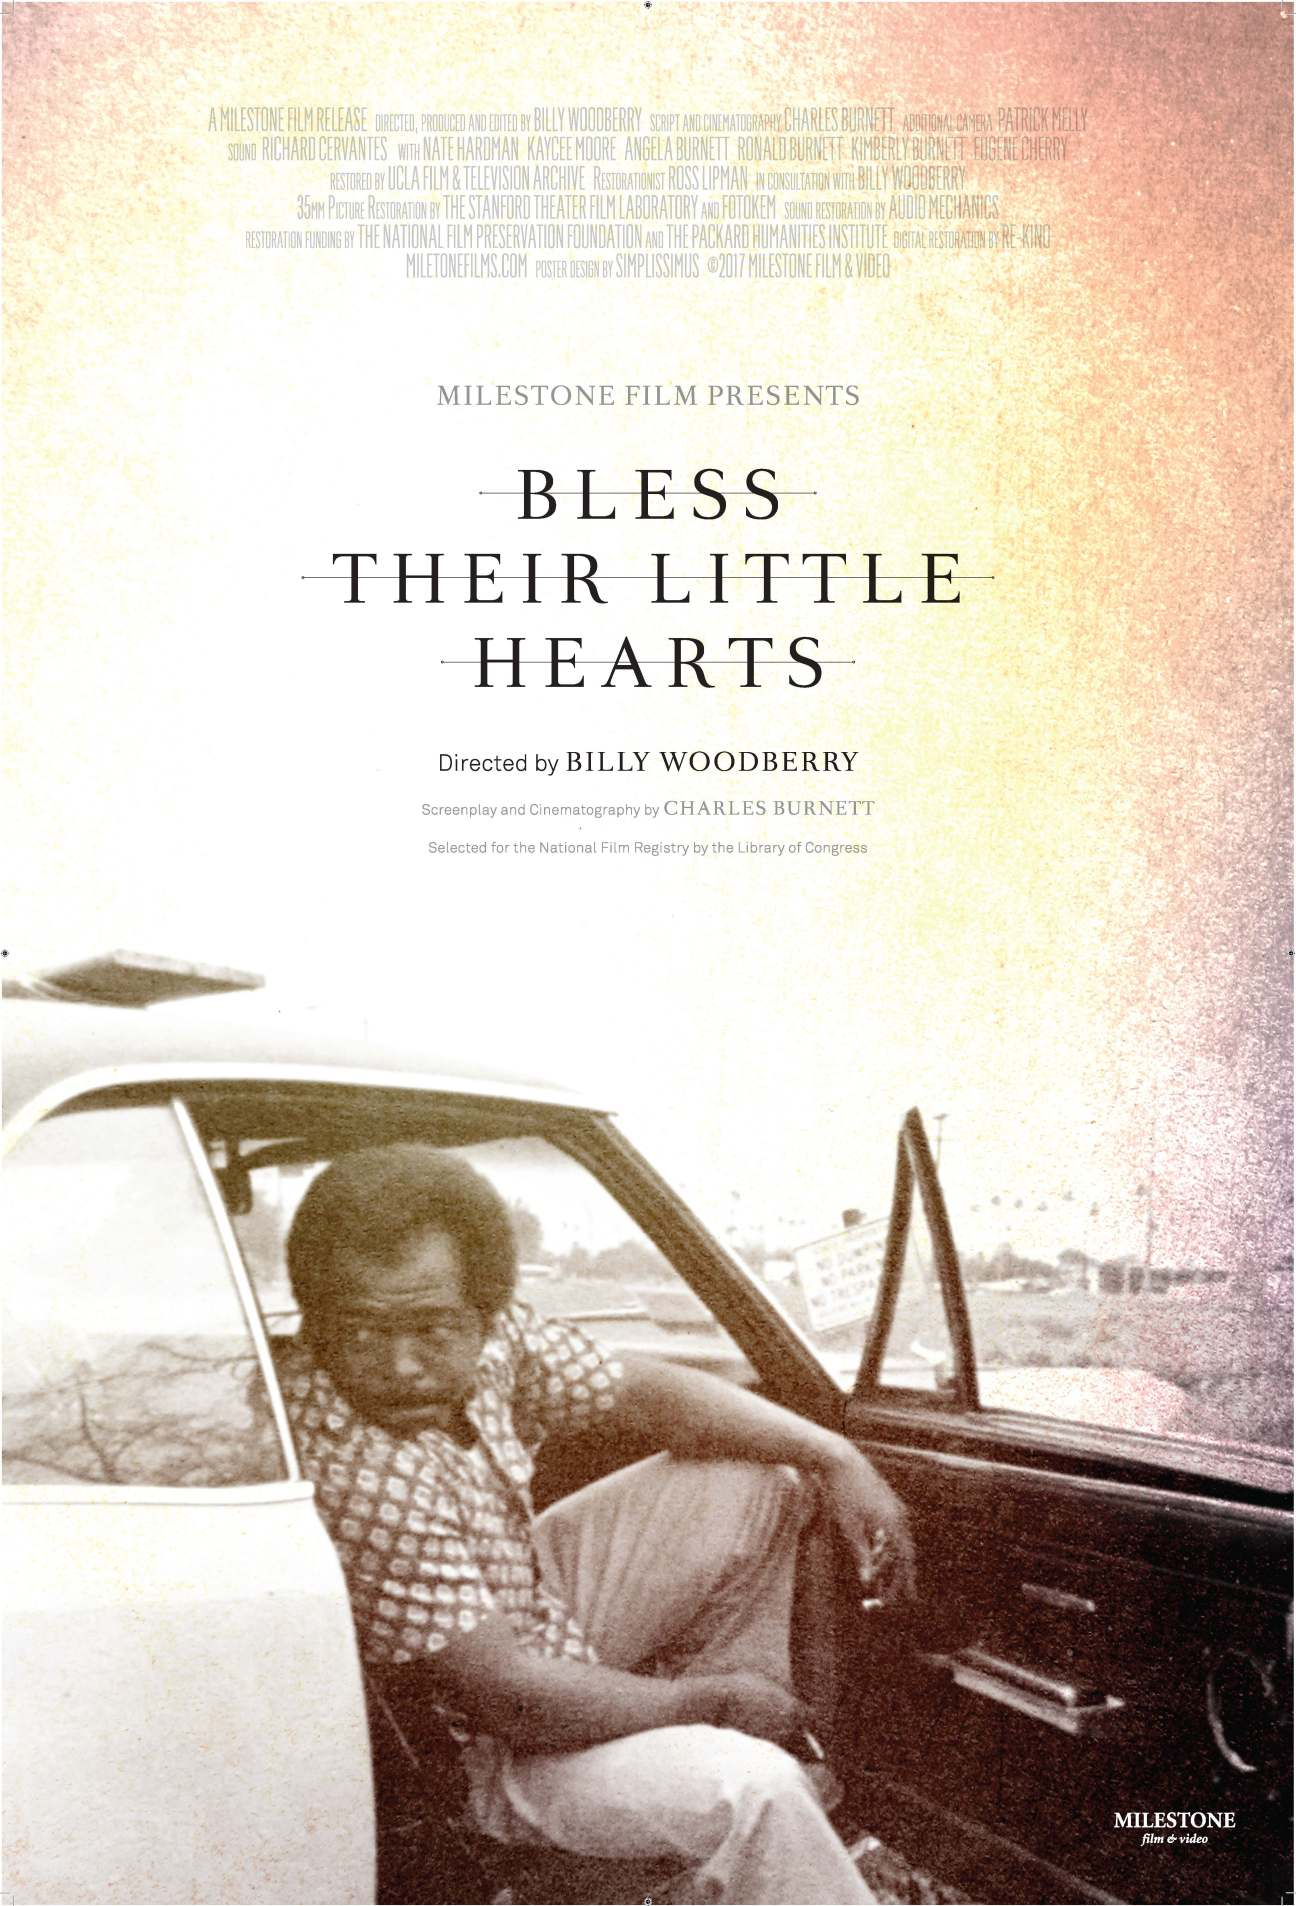 050417_BLESS_POSTER_27X40